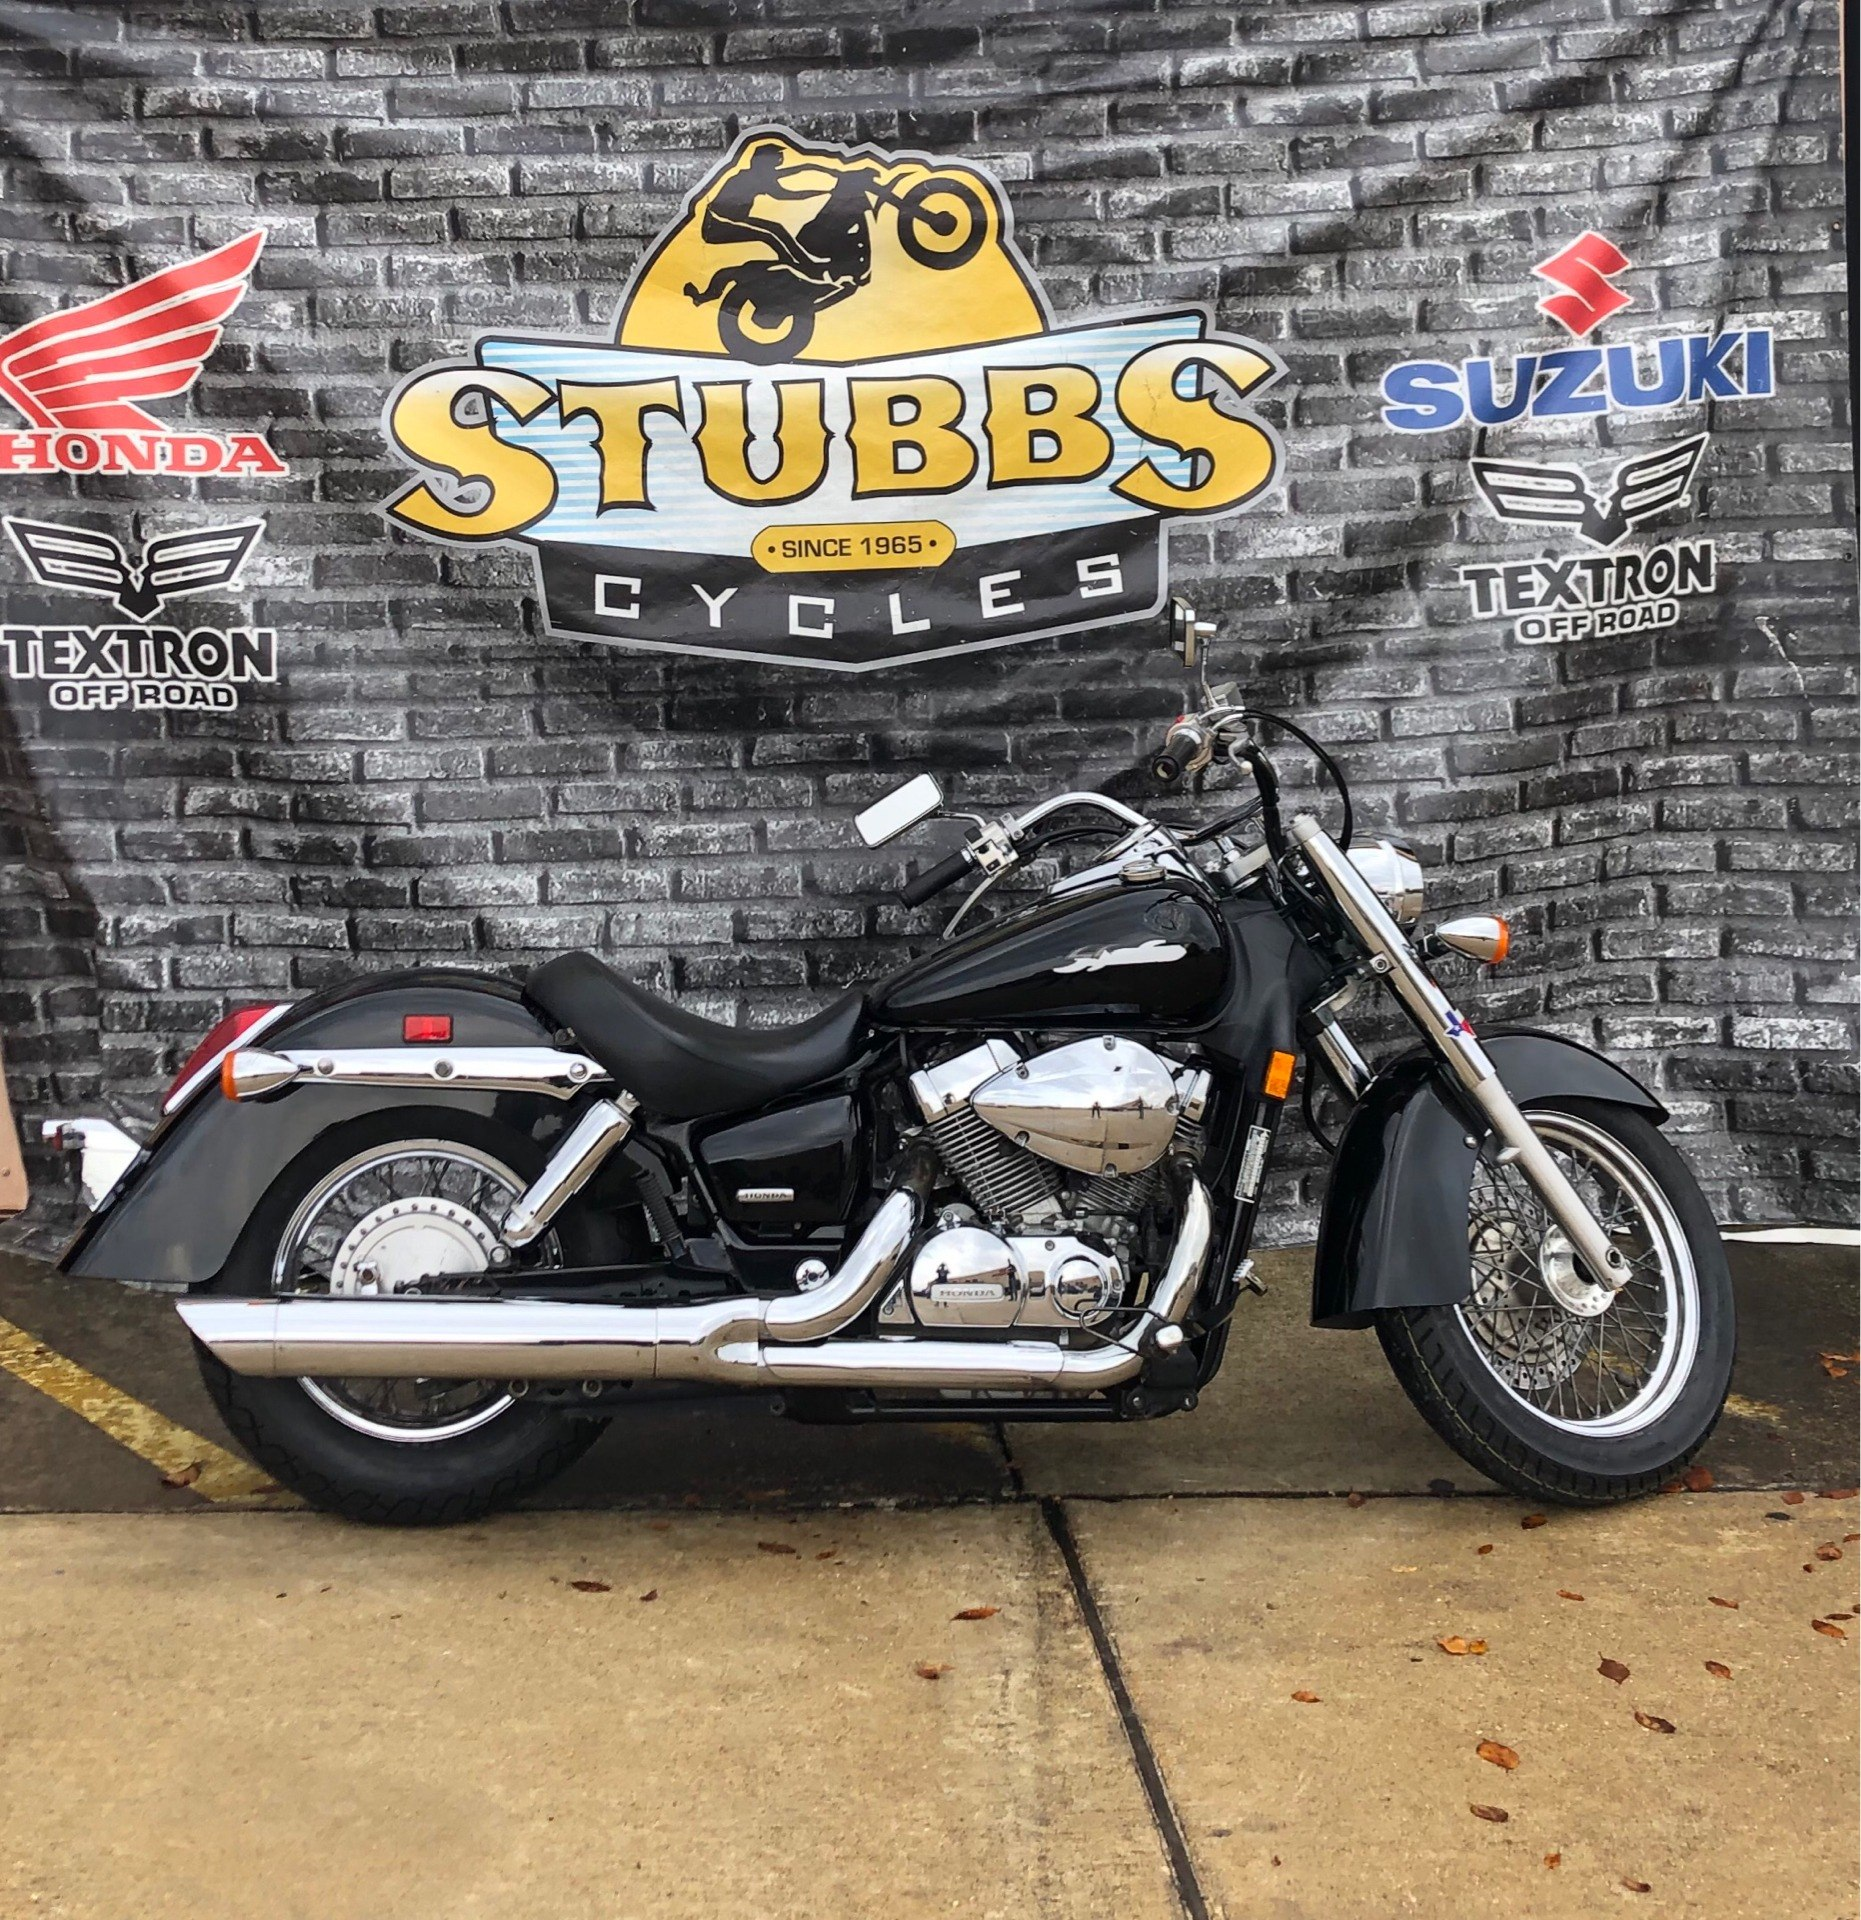 2004 Honda Shadow Aero in Houston, Texas - Photo 1